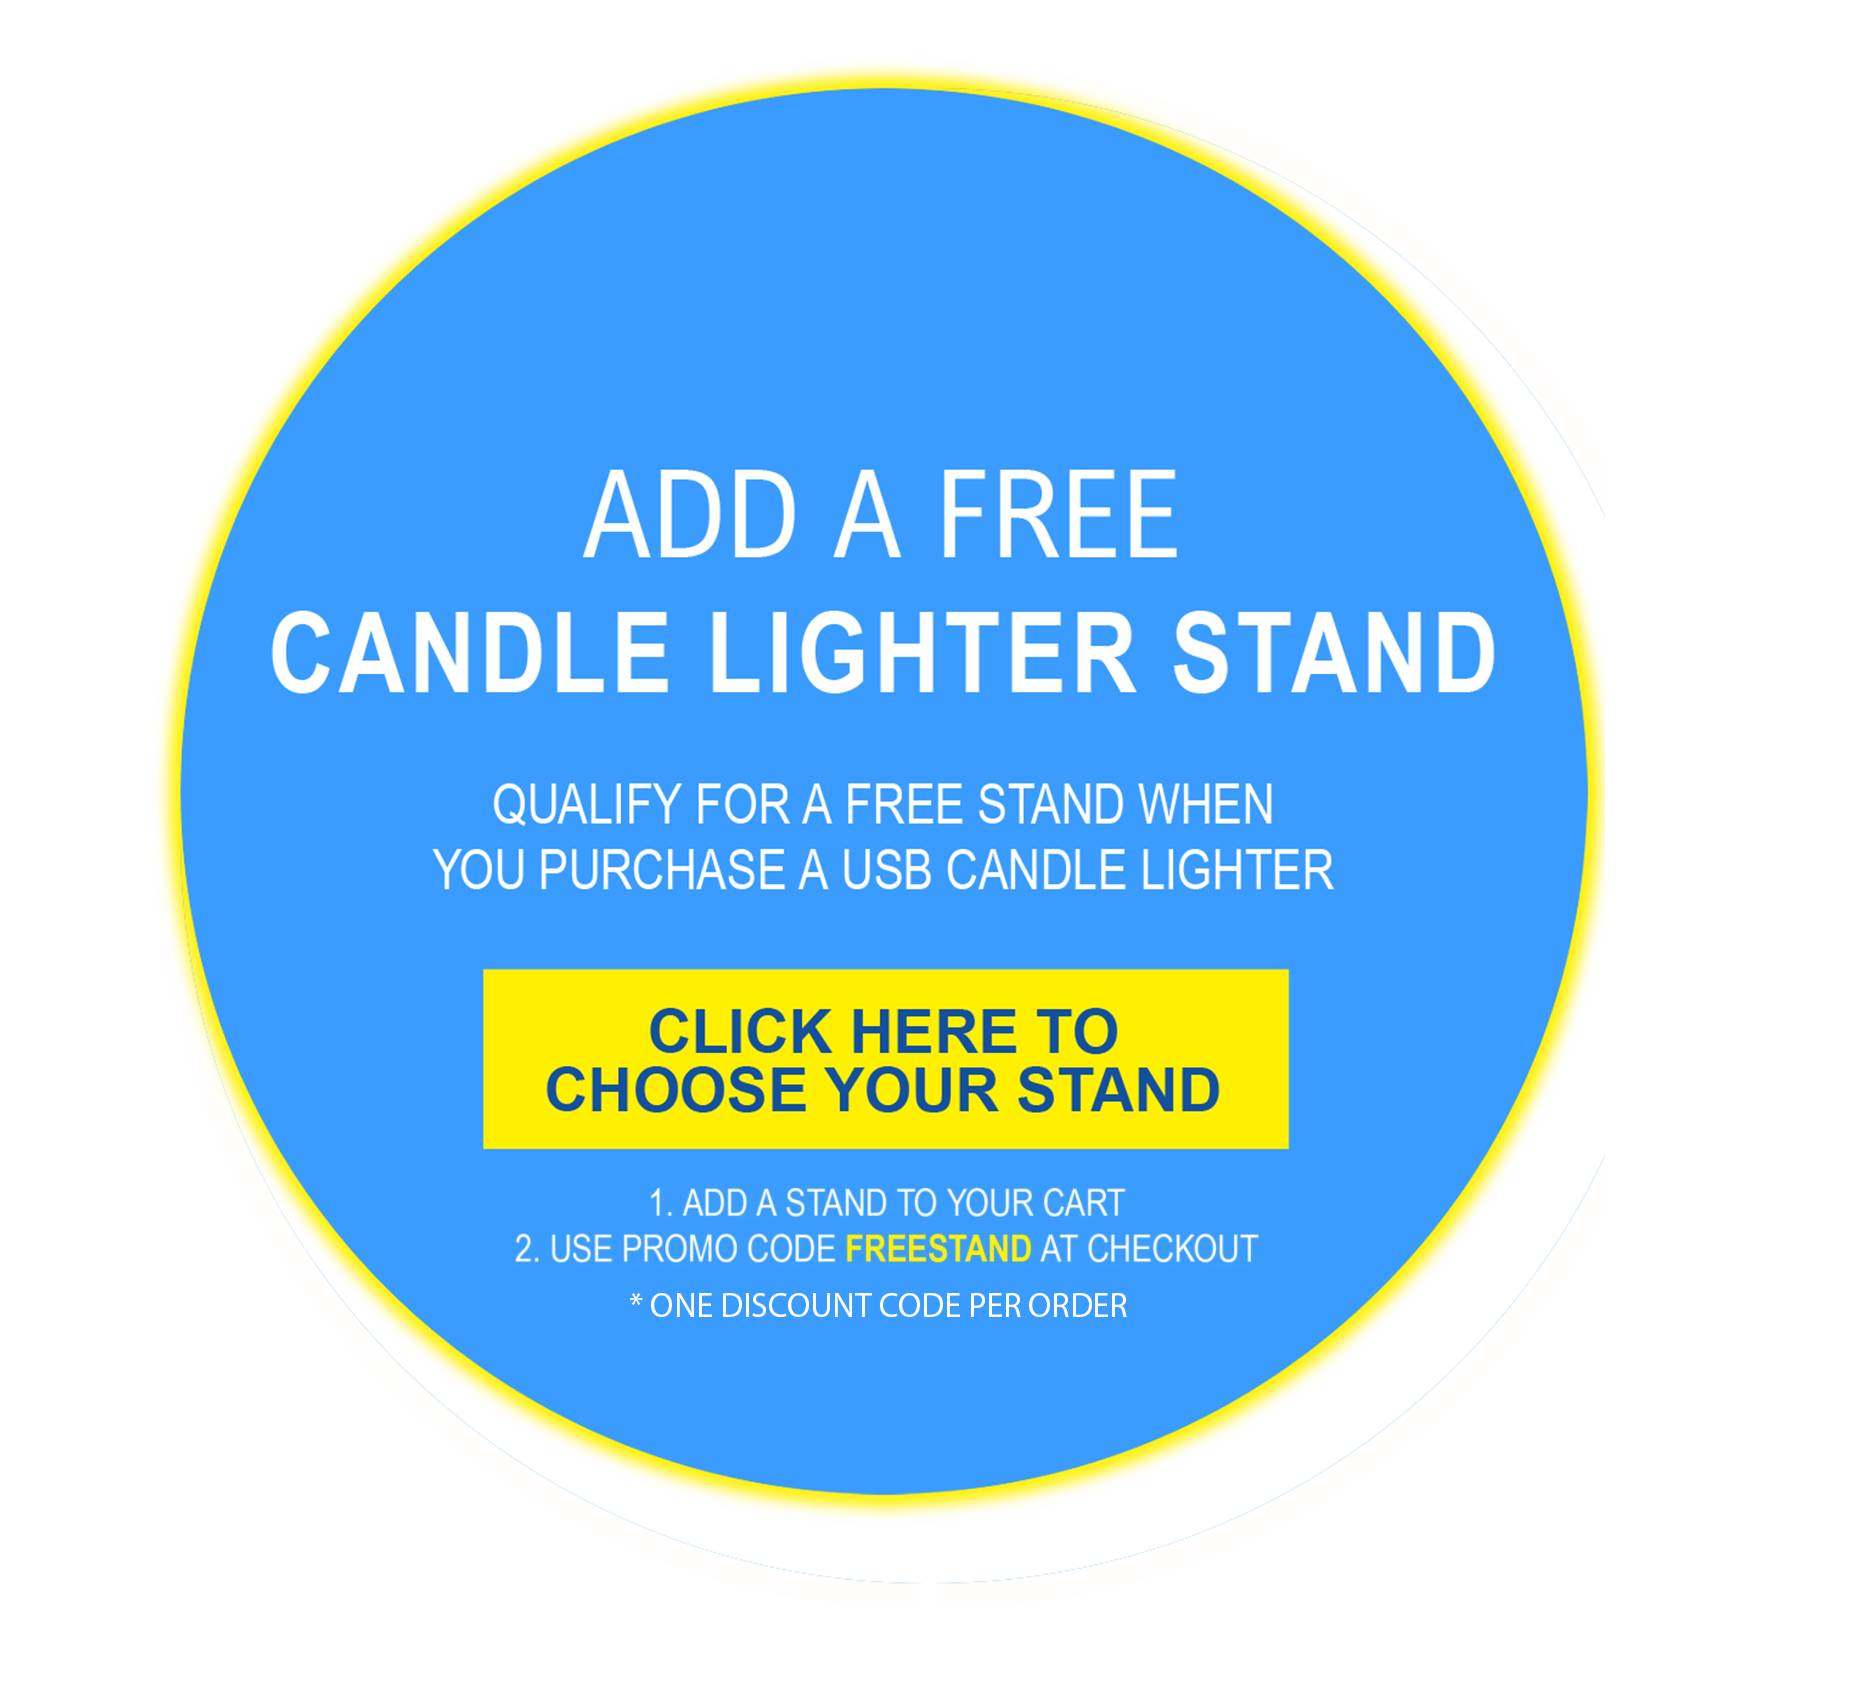 CLAIM YOUR FREE LIGHTER STAND. QUALIFY FOR ONE FREE LIGHTER STAND WHEN YOU PURCHASE A USB CANDLE LIGHTER. ONE DISCOUNT CODE PER ORDER. CLICK HERE TO SELECT YOUR STAND